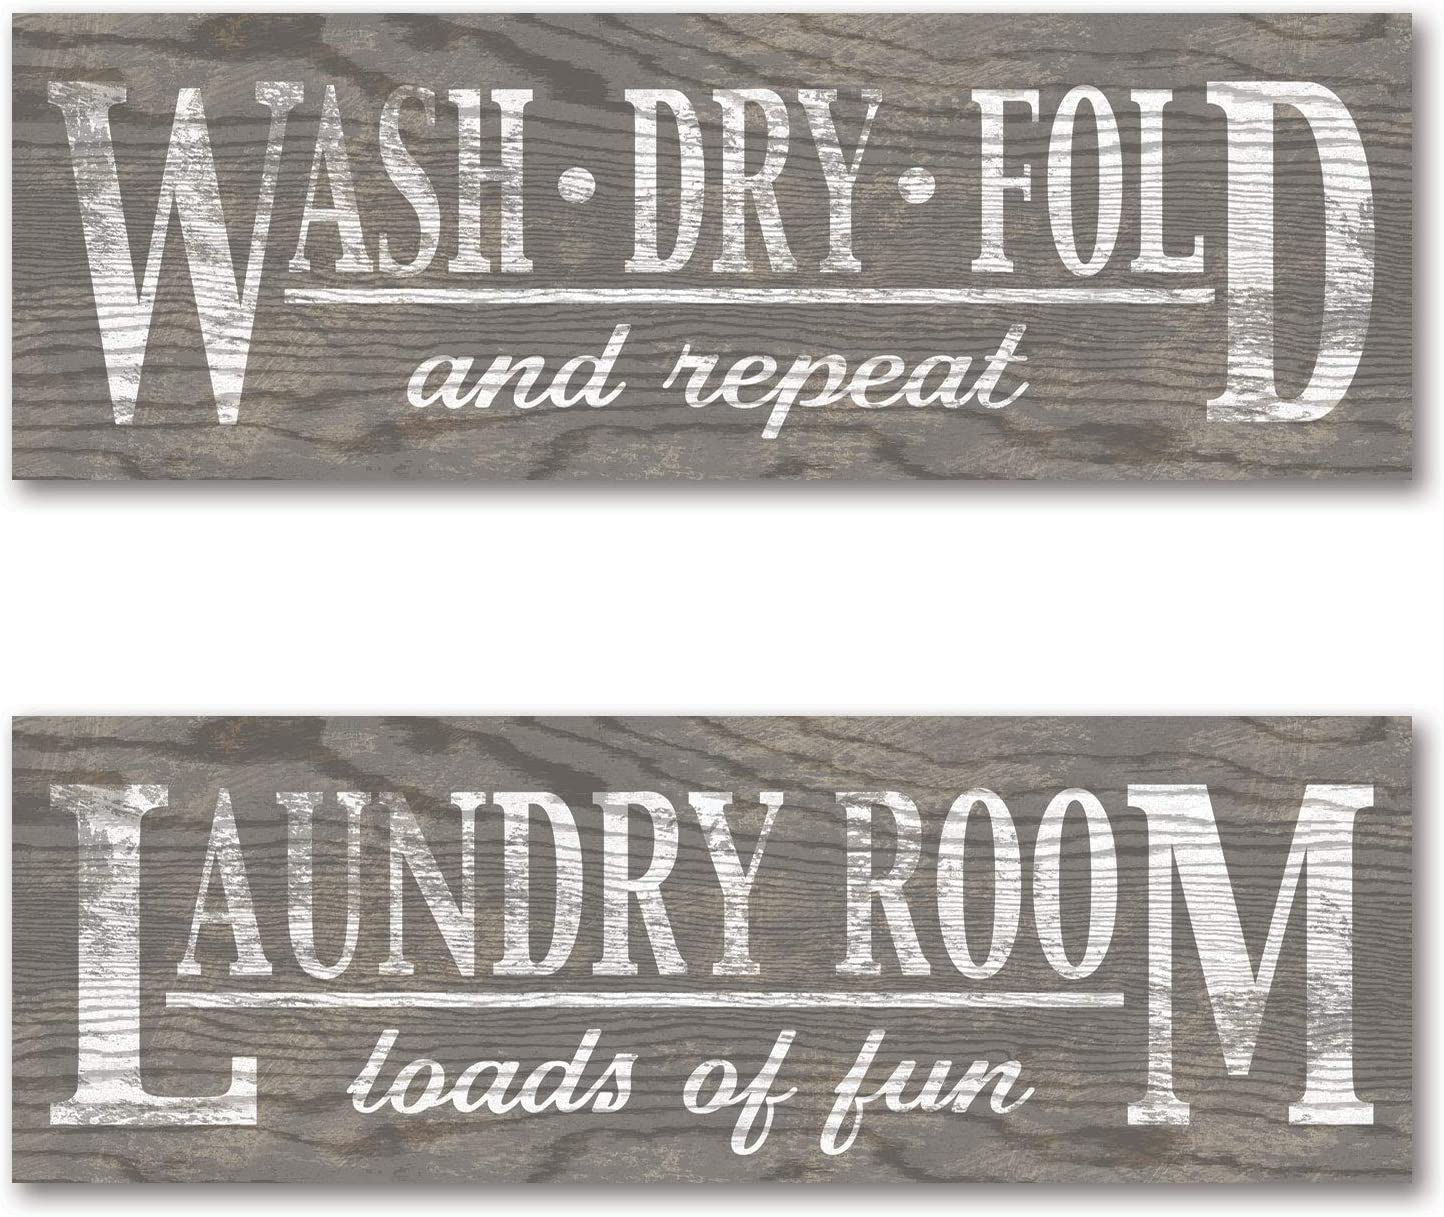 Gango Home Decor Classic Grey Laundry Signs on Wood-Panel Style Background; Two 18x6in Mounted Pieces; Ready to Hang!